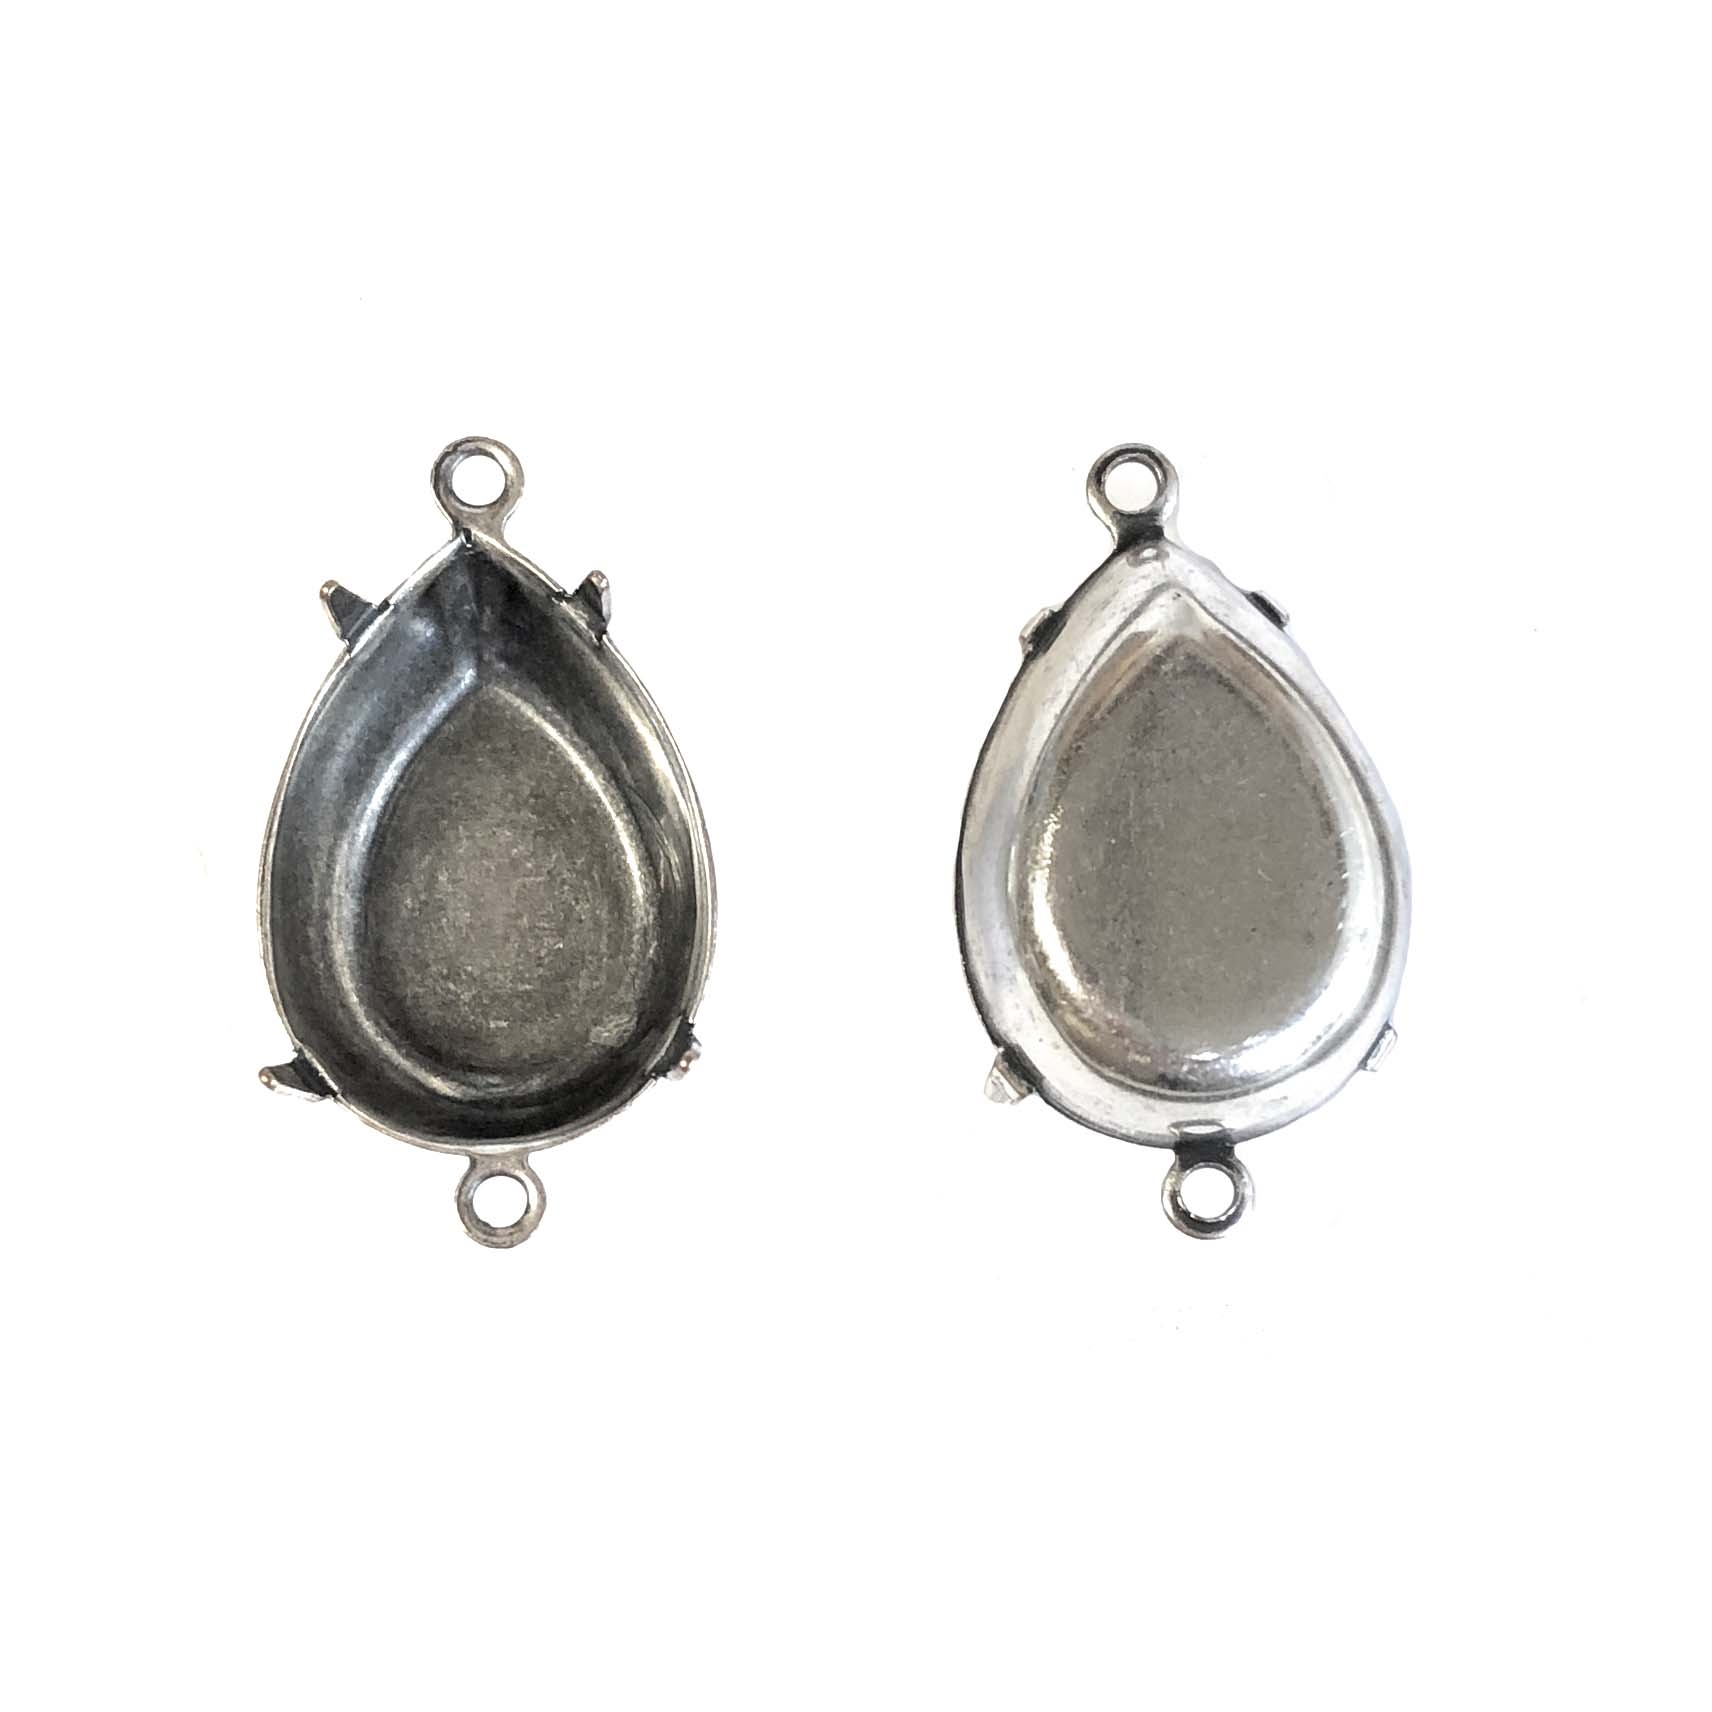 brass bezel connector, pendant, cameo mount, stone mount, 01010, silverplate mount, silver, silverplate, silverware, teardrop mount, teardrop, stone set, pear shape, connectors, bezels, silver bezel, silver connector, 18x13mm